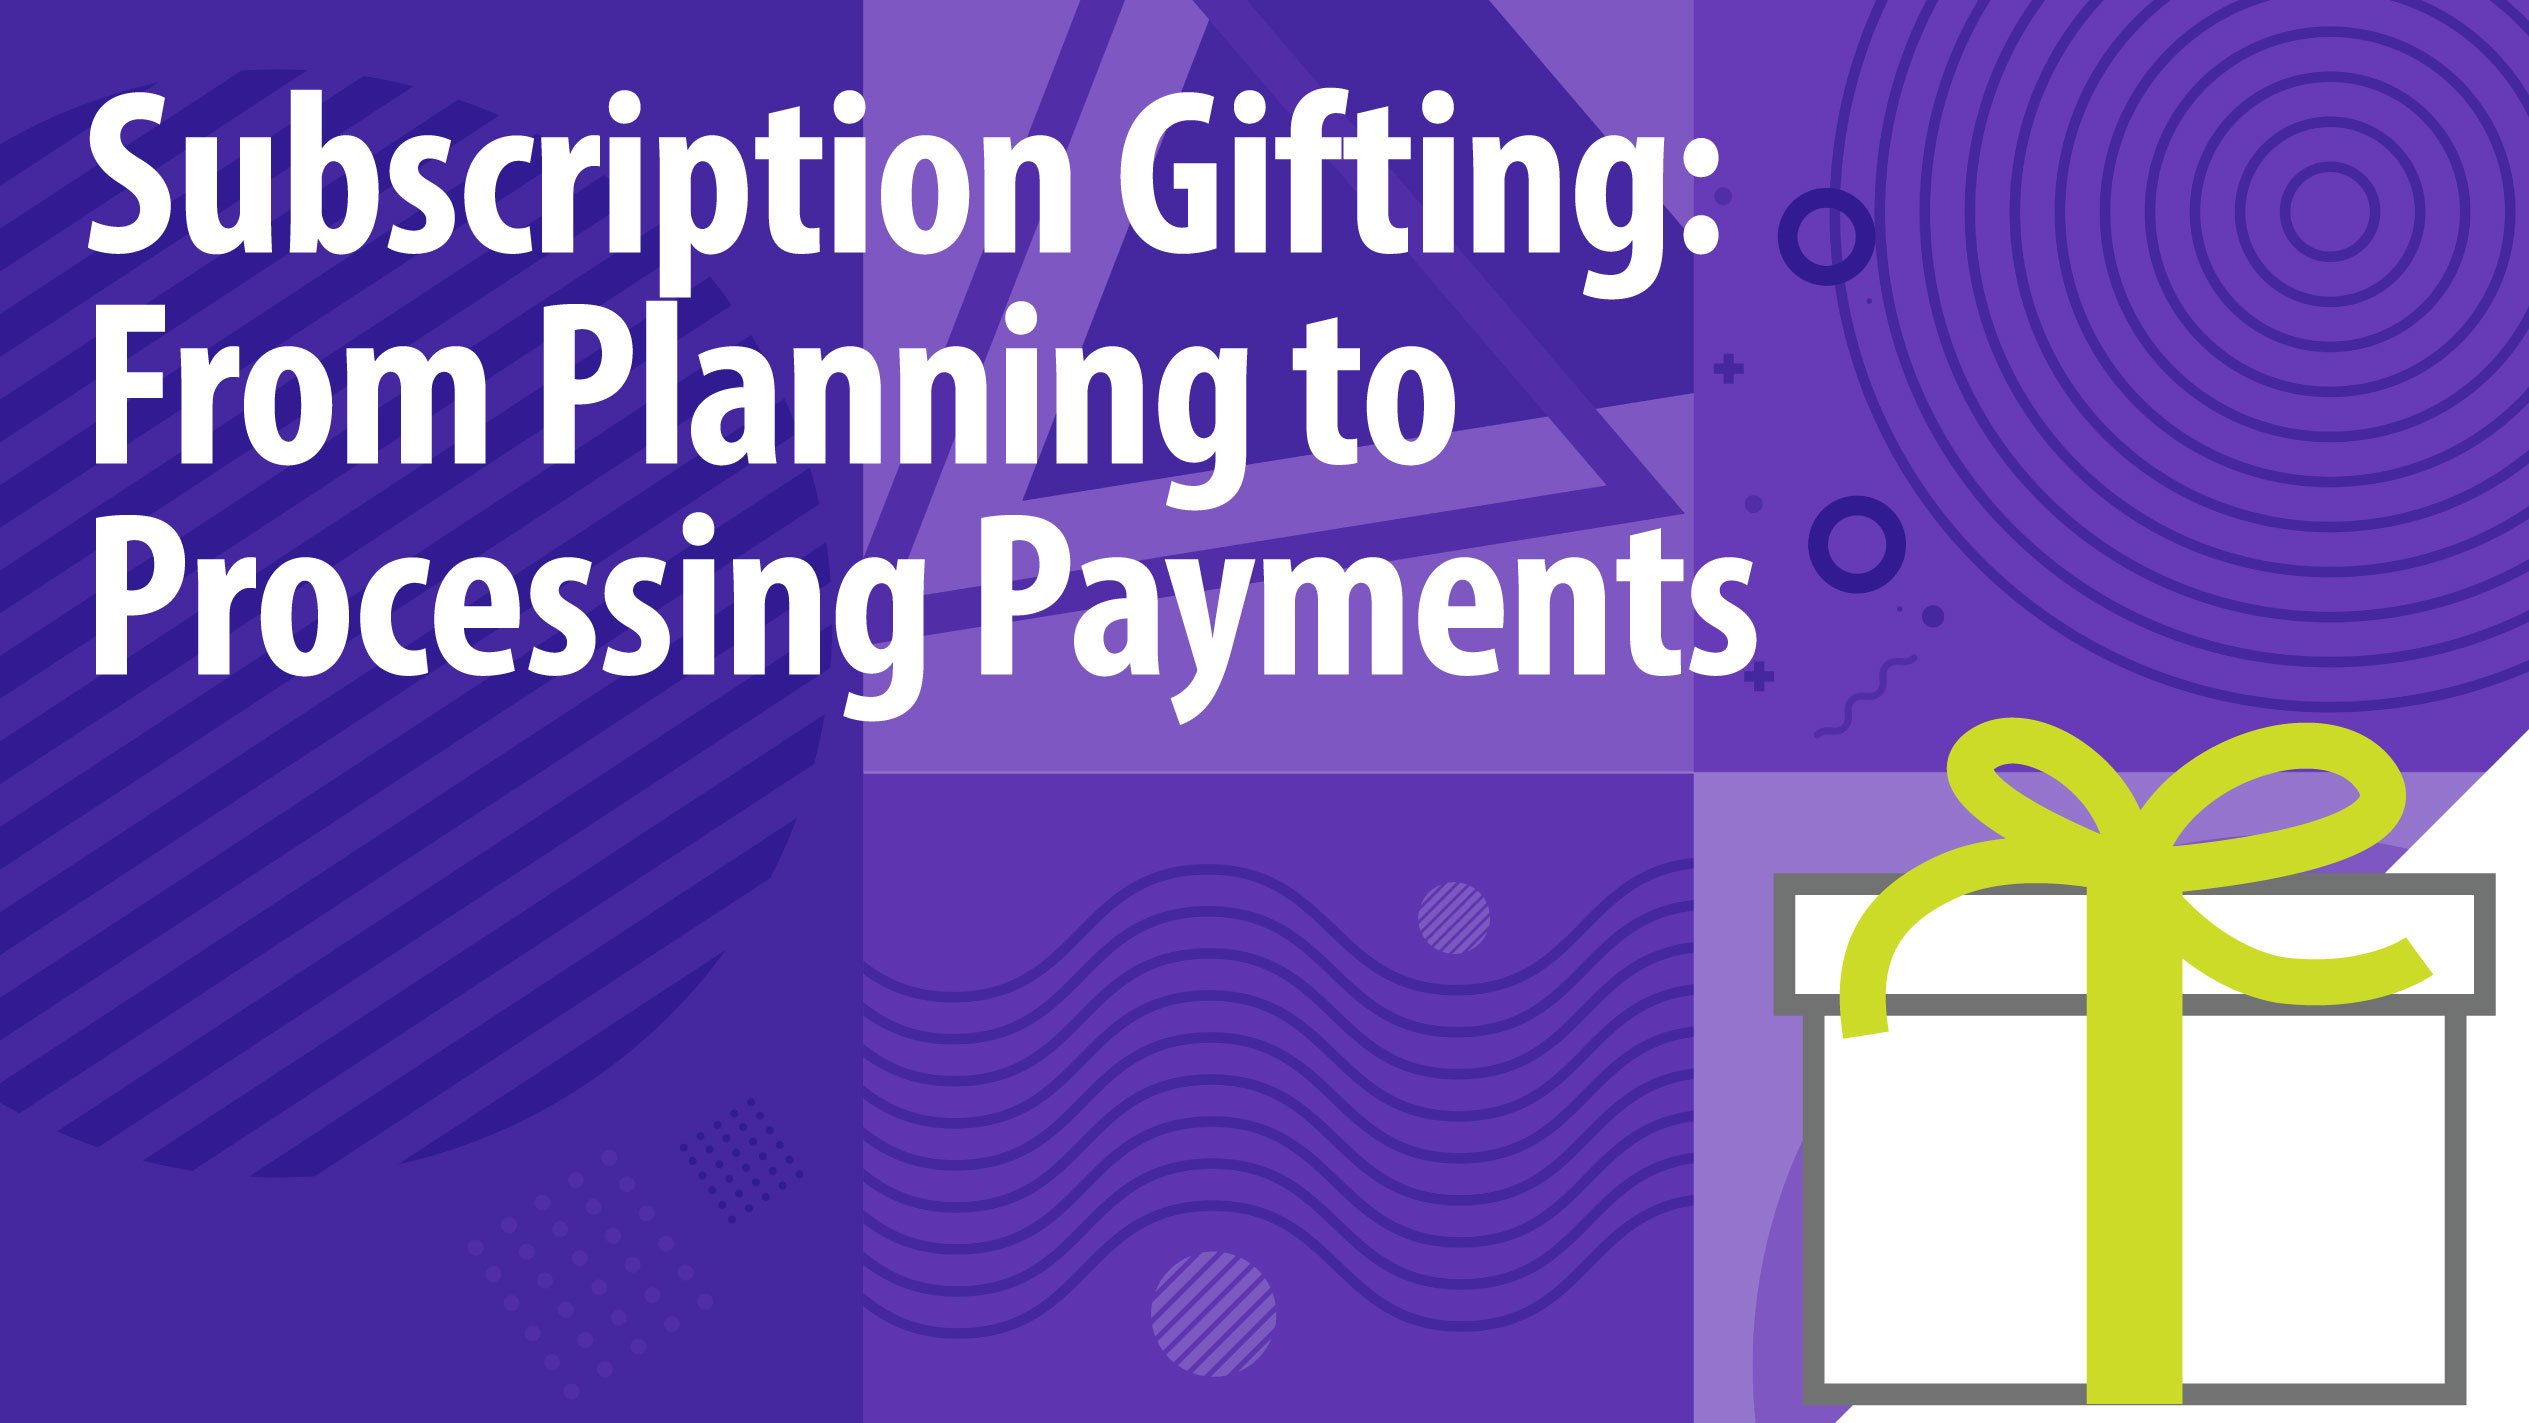 Subscription Gifting: From Planning to Processing Payments